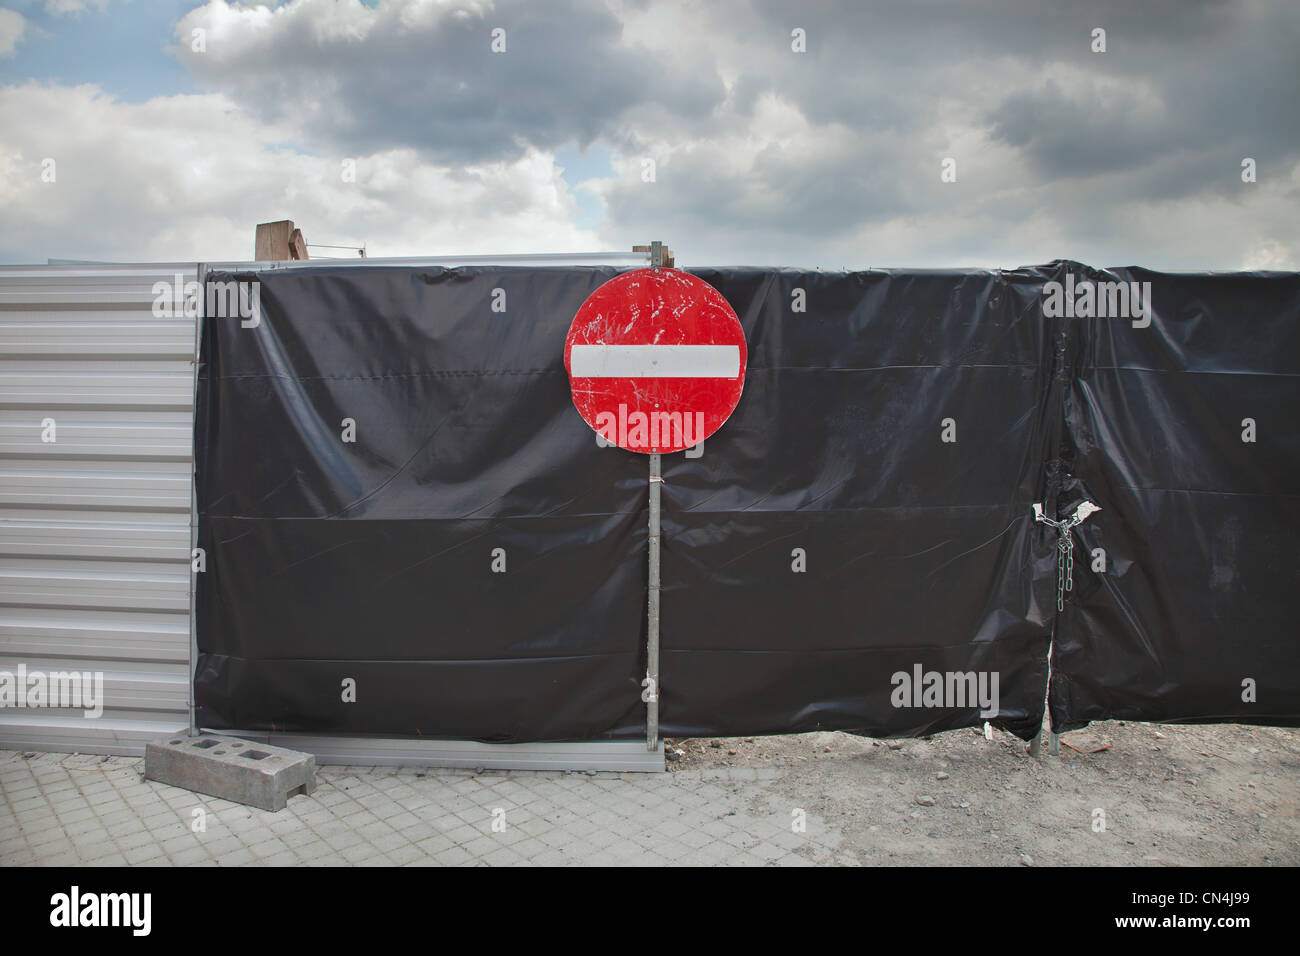 No entry sign on gate - Stock Image